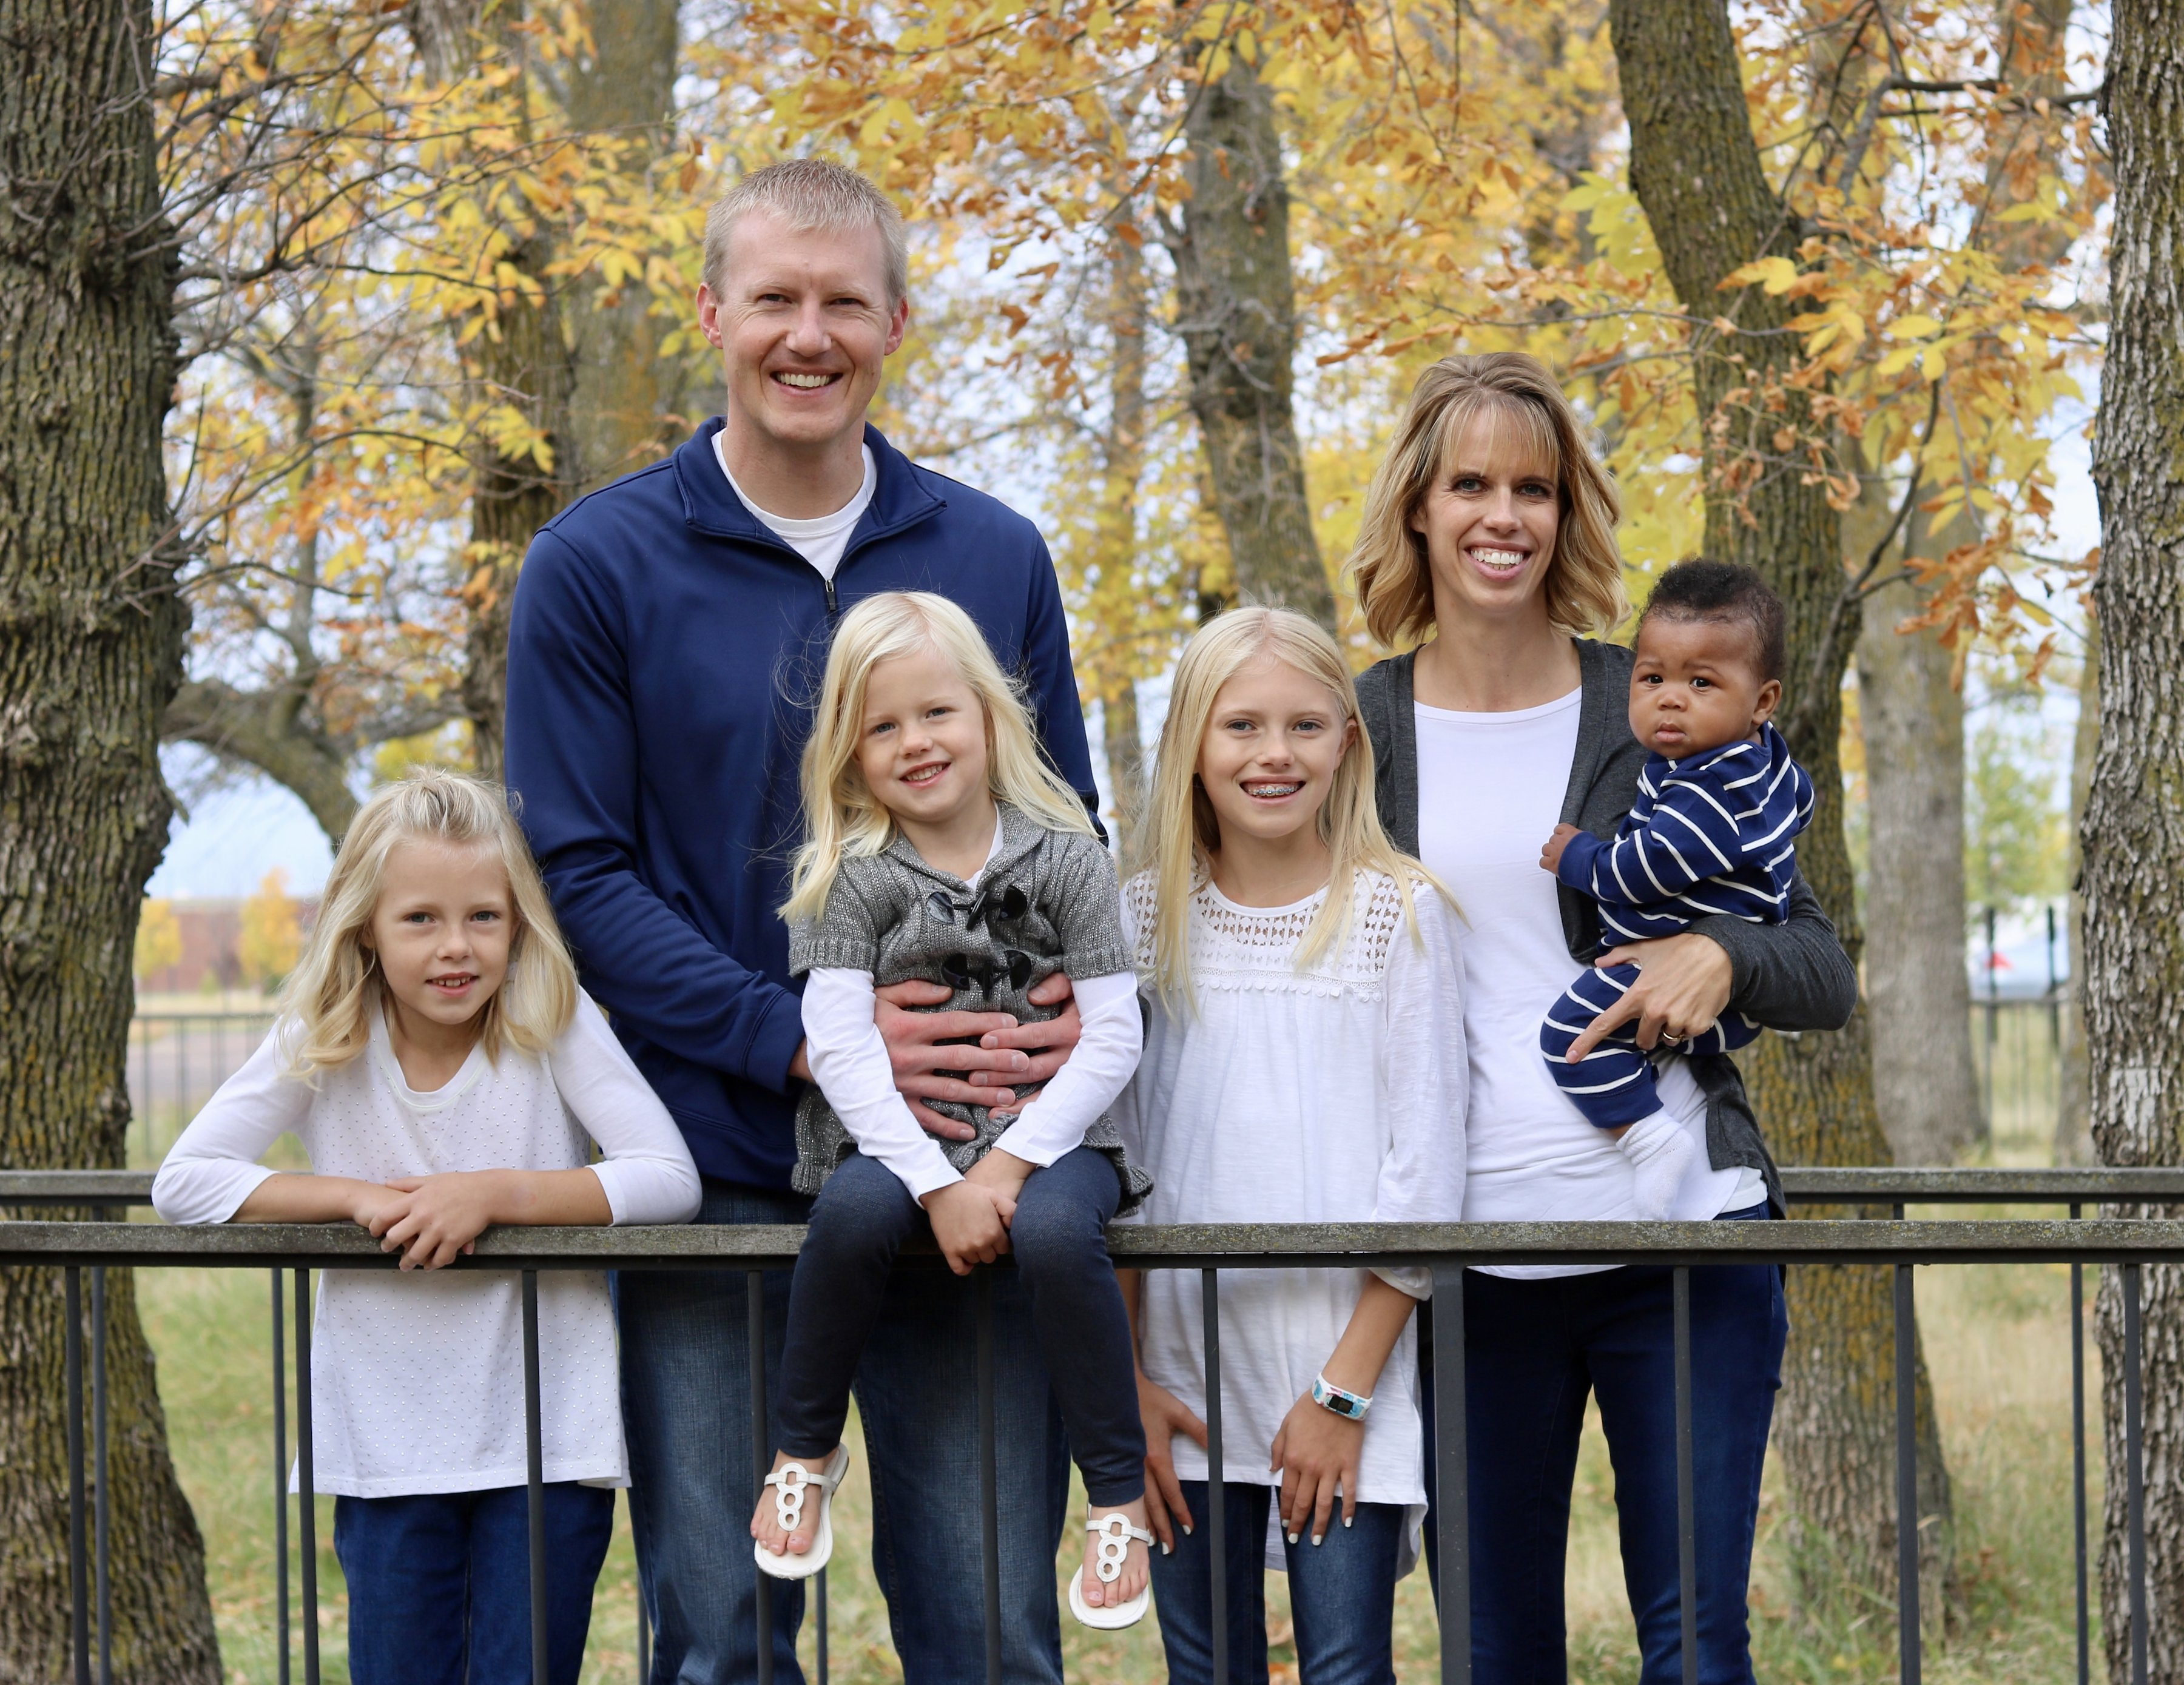 Our Family – Blessed by Adoption